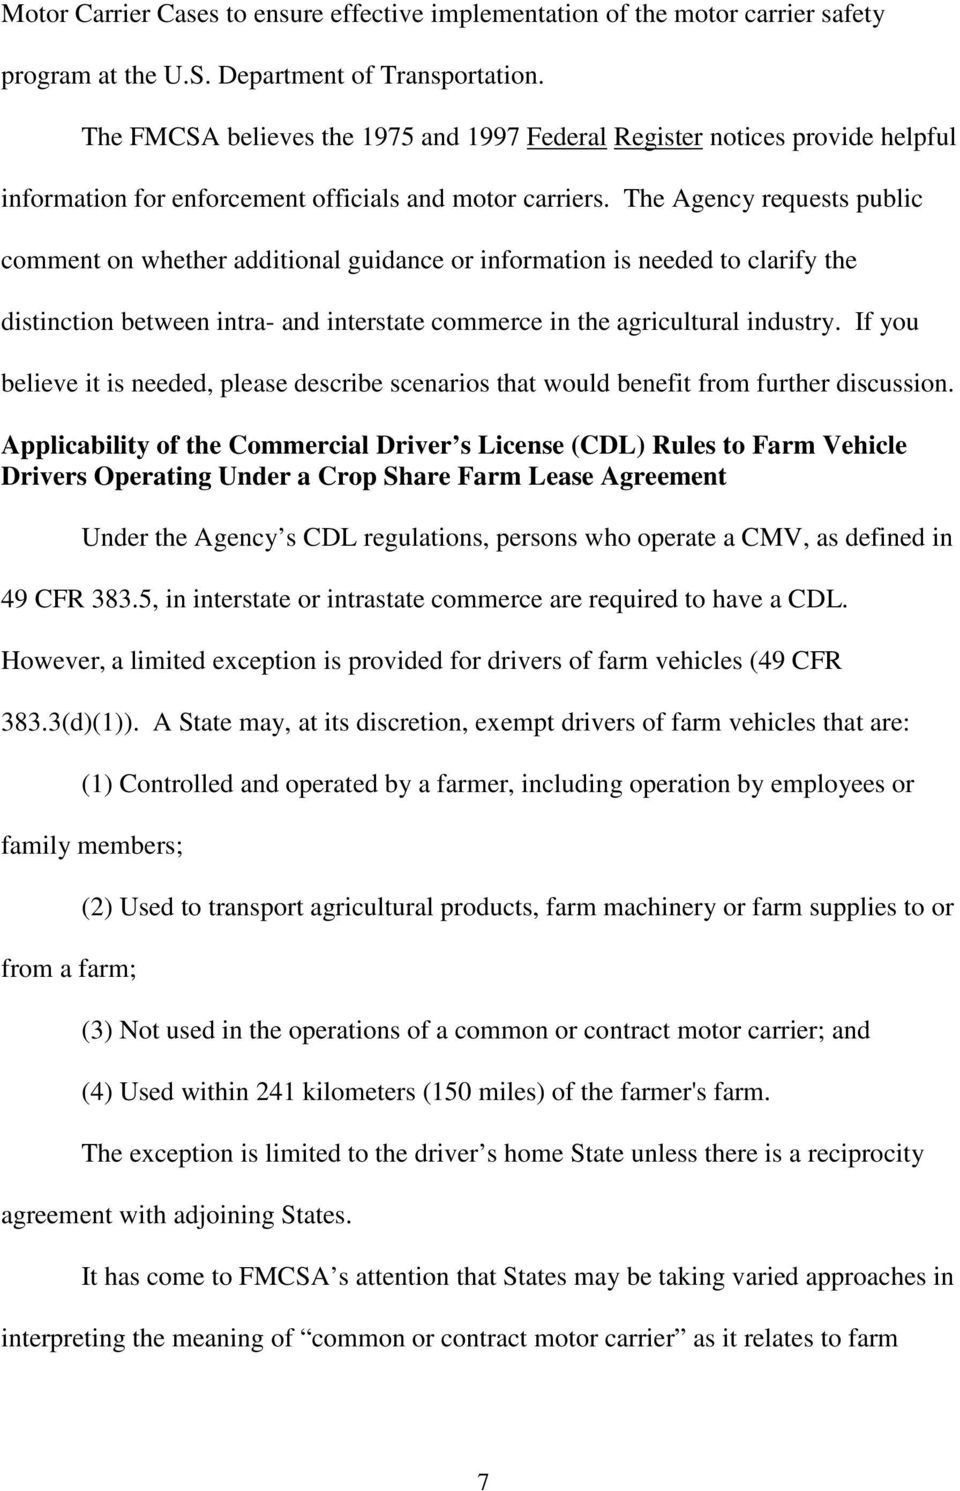 The Agency requests public comment on whether additional guidance or information is needed to clarify the distinction between intra- and interstate commerce in the agricultural industry.